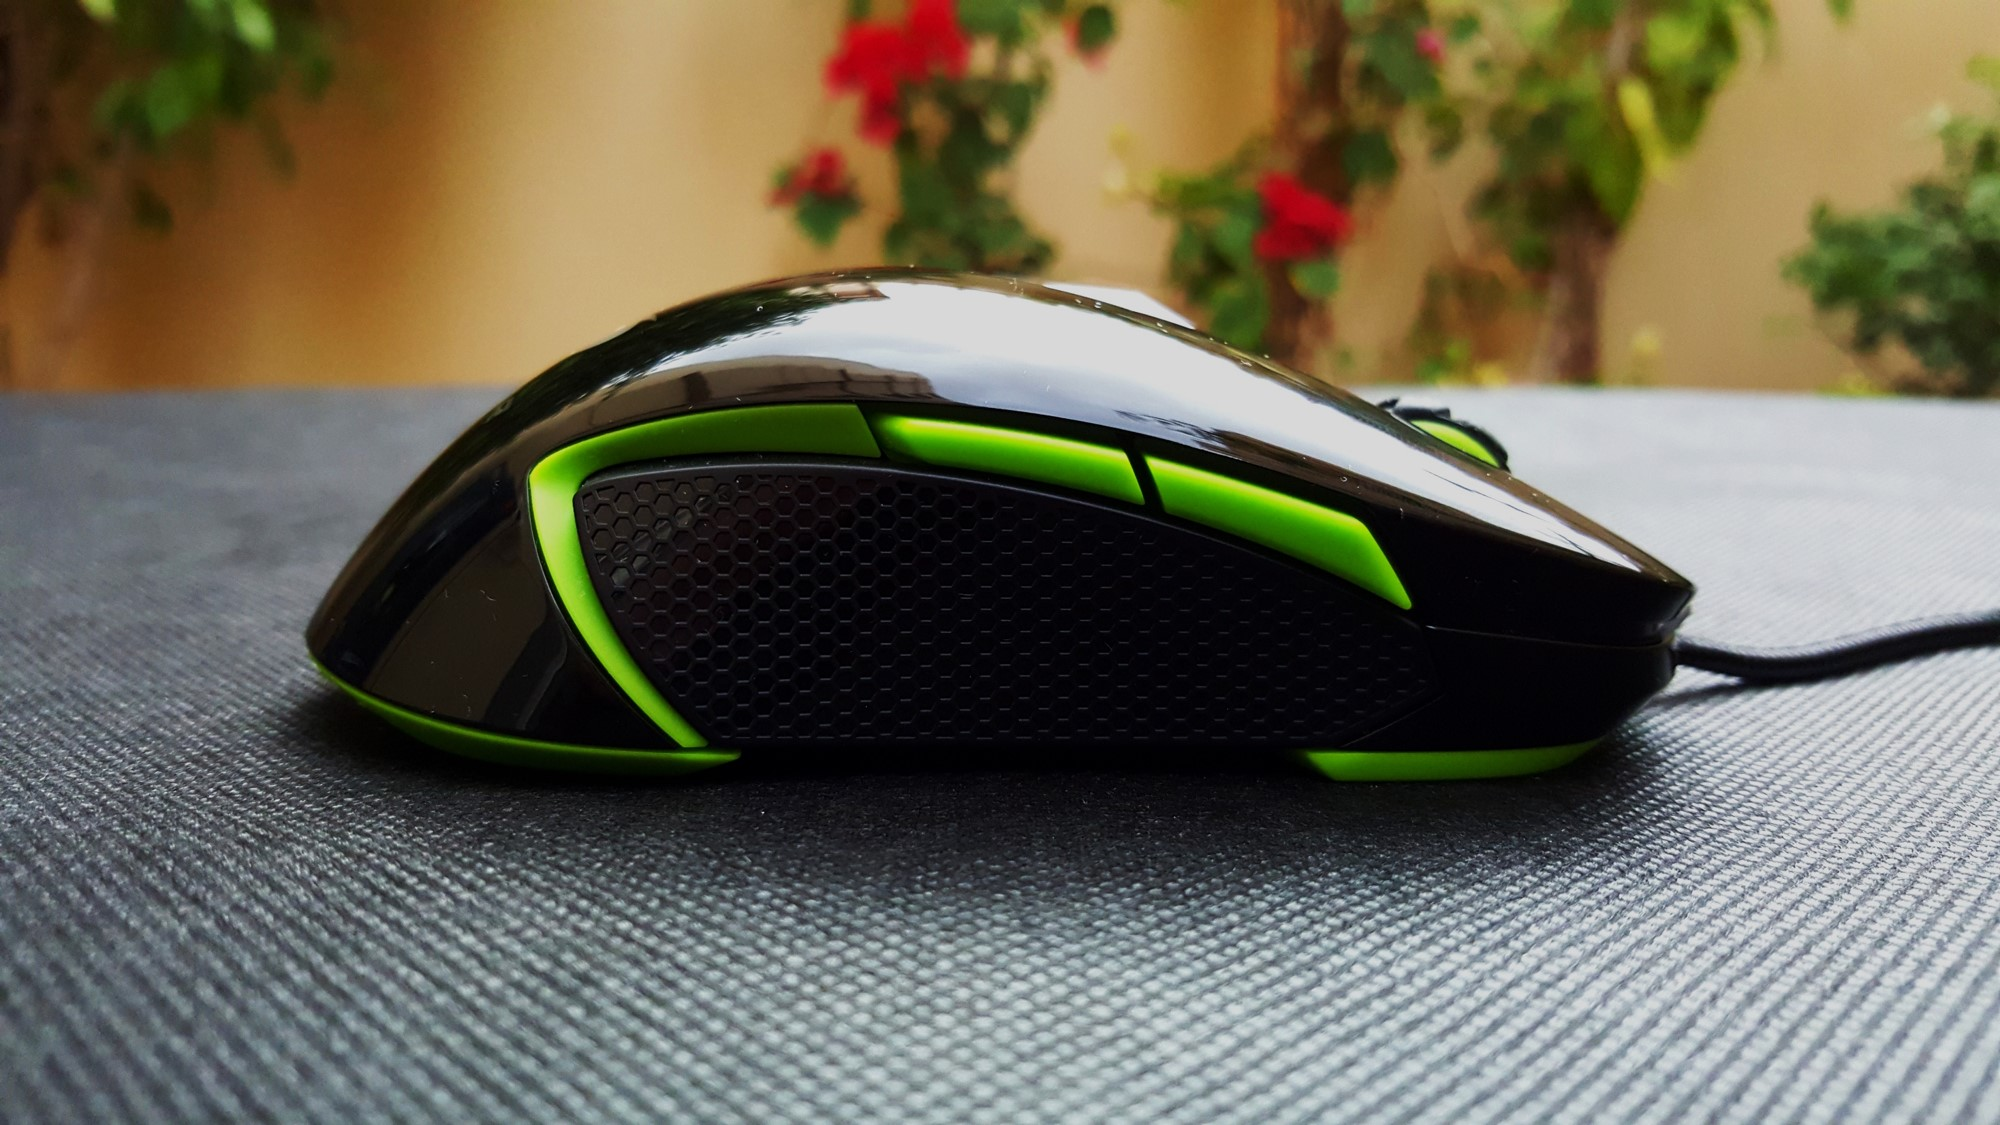 6-Couger 450M Black Edition Gaming Mouse Right Side